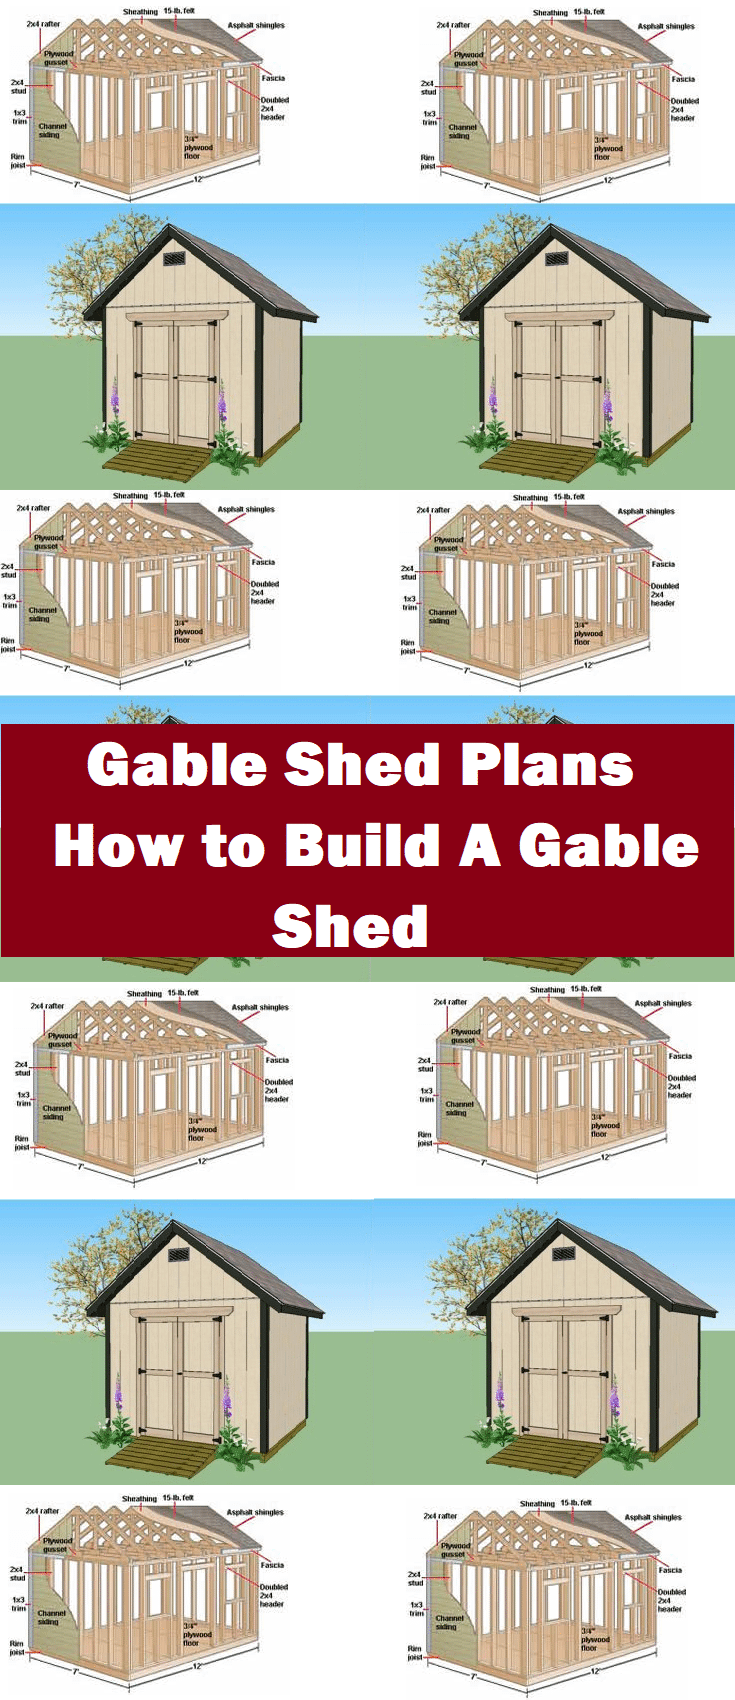 Gable Shed Plans